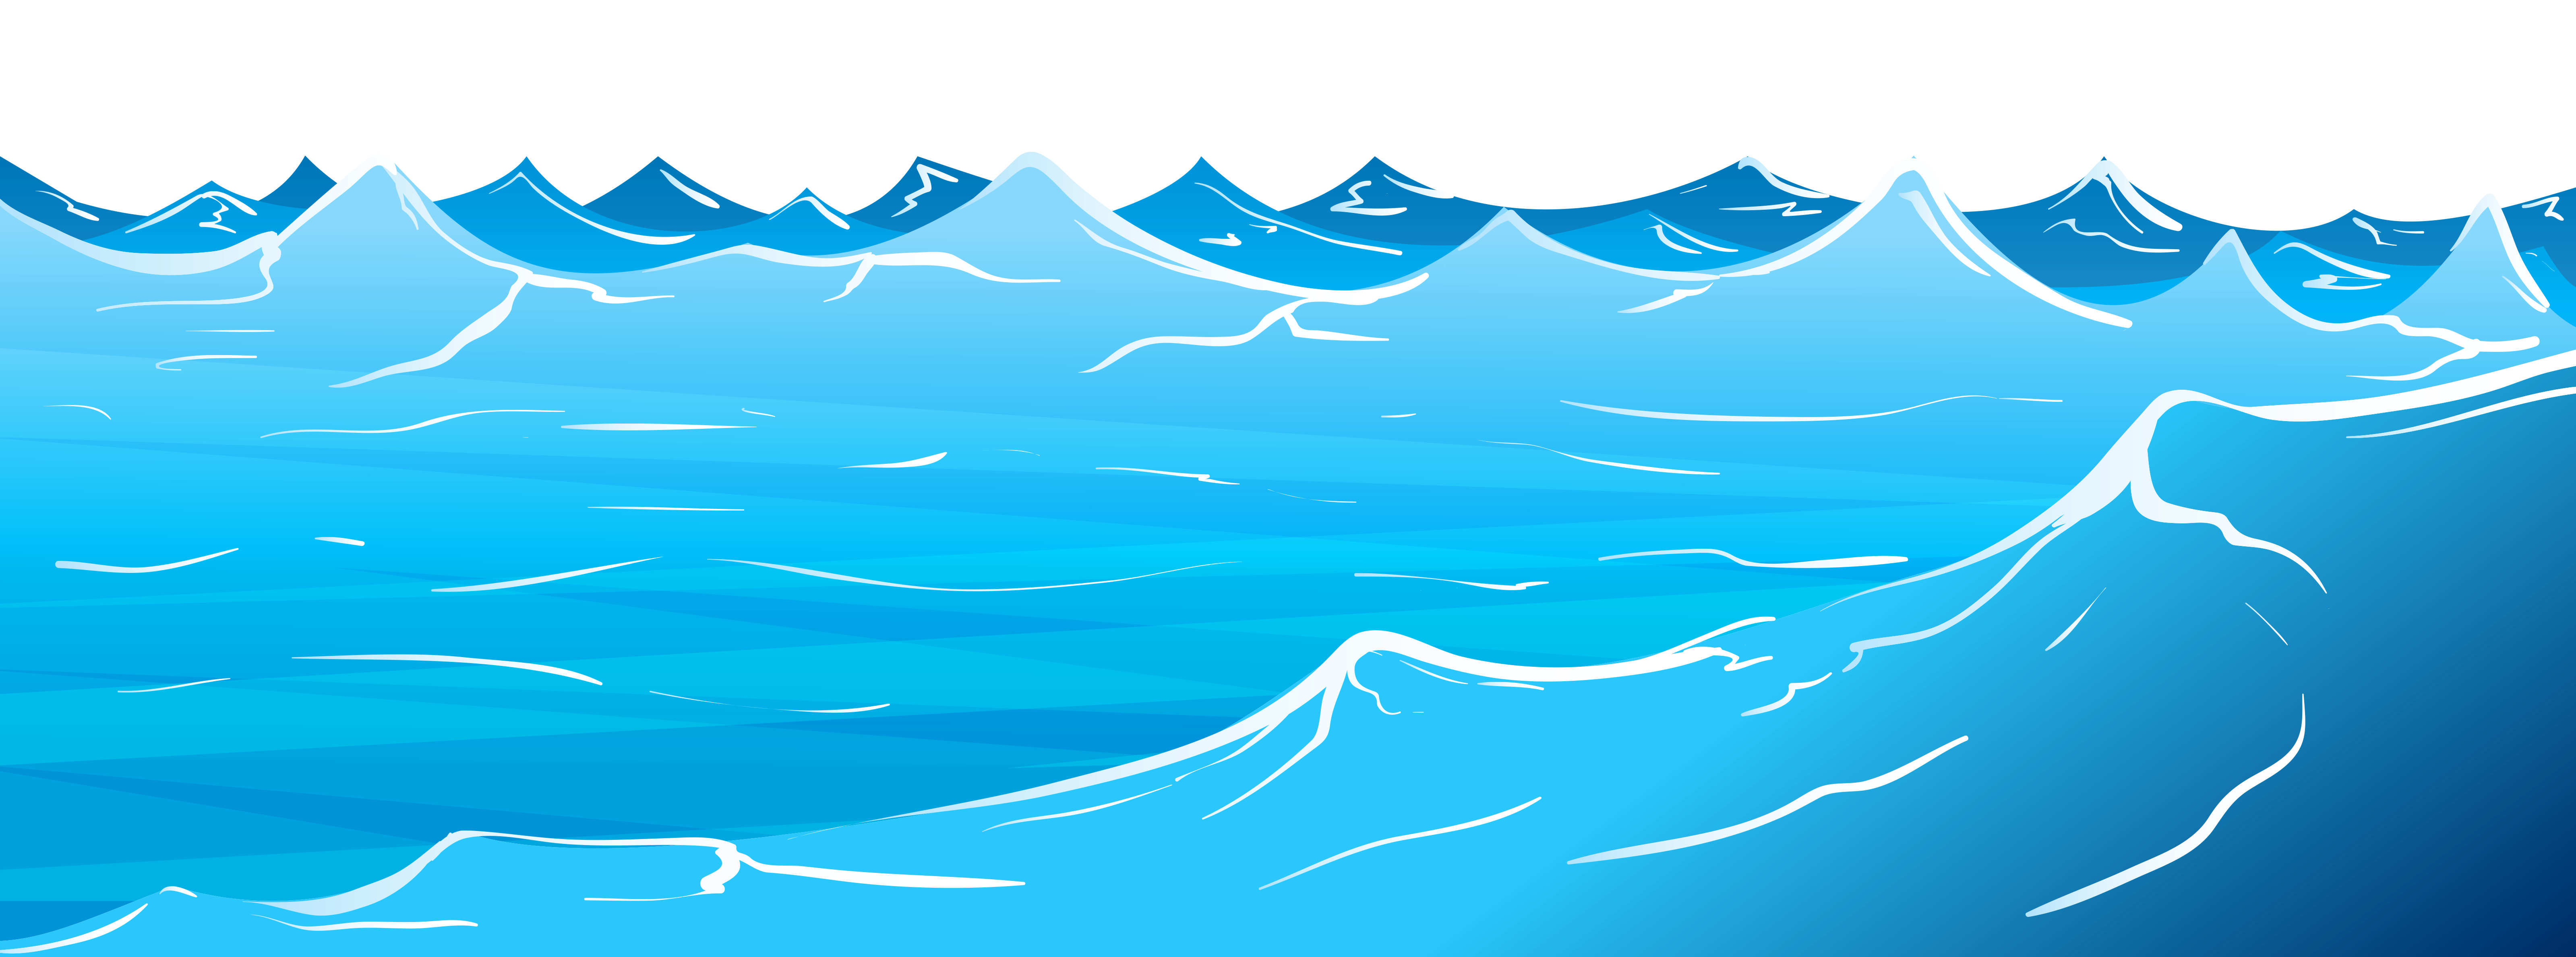 Wave clipart curling wave. What is in ocean